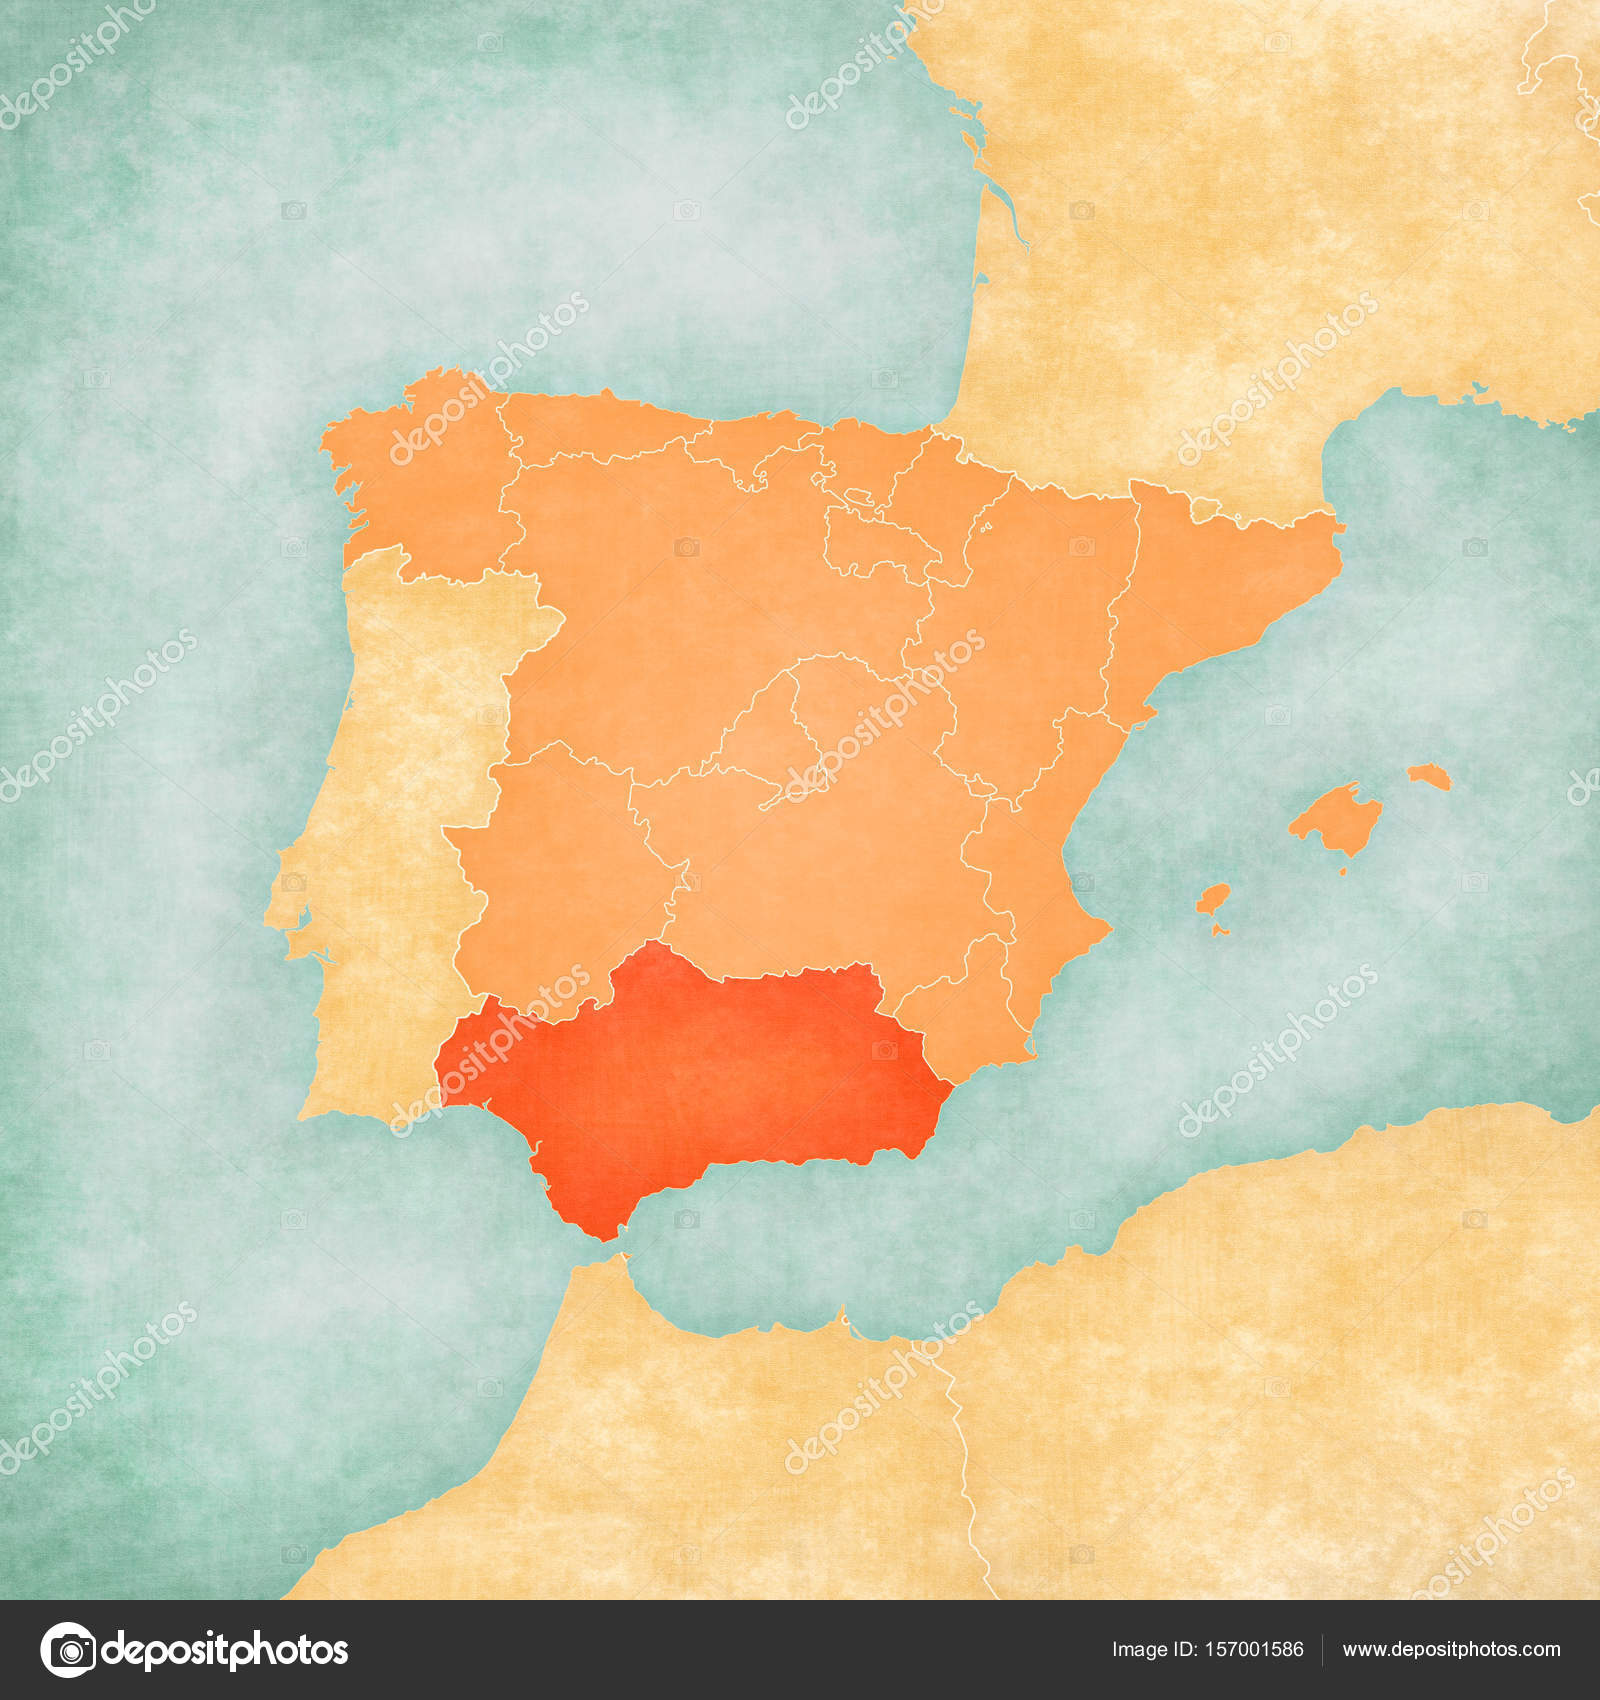 Map of Iberian Peninsula - Andalusia — Stock Photo © Tindo ... Iberian Peninsula On World Map on spanish language, amazon river on world map, rift valley on world map, red sea on world map, bering strait on world map, middle east on world map, black sea on world map, russia on world map, black sea, indonesia on world map, rock of gibraltar, italian peninsula, india on world map, malay peninsula on world map, croatia on world map, strait of gibraltar on world map, spanish inquisition, korean peninsula on world map, indochina peninsula on world map, yucatan peninsula on world map, strait of gibraltar, scandinavian peninsula, jutland peninsula on world map, andes mountains on world map, mesoamerica world map, puget sound on world map,